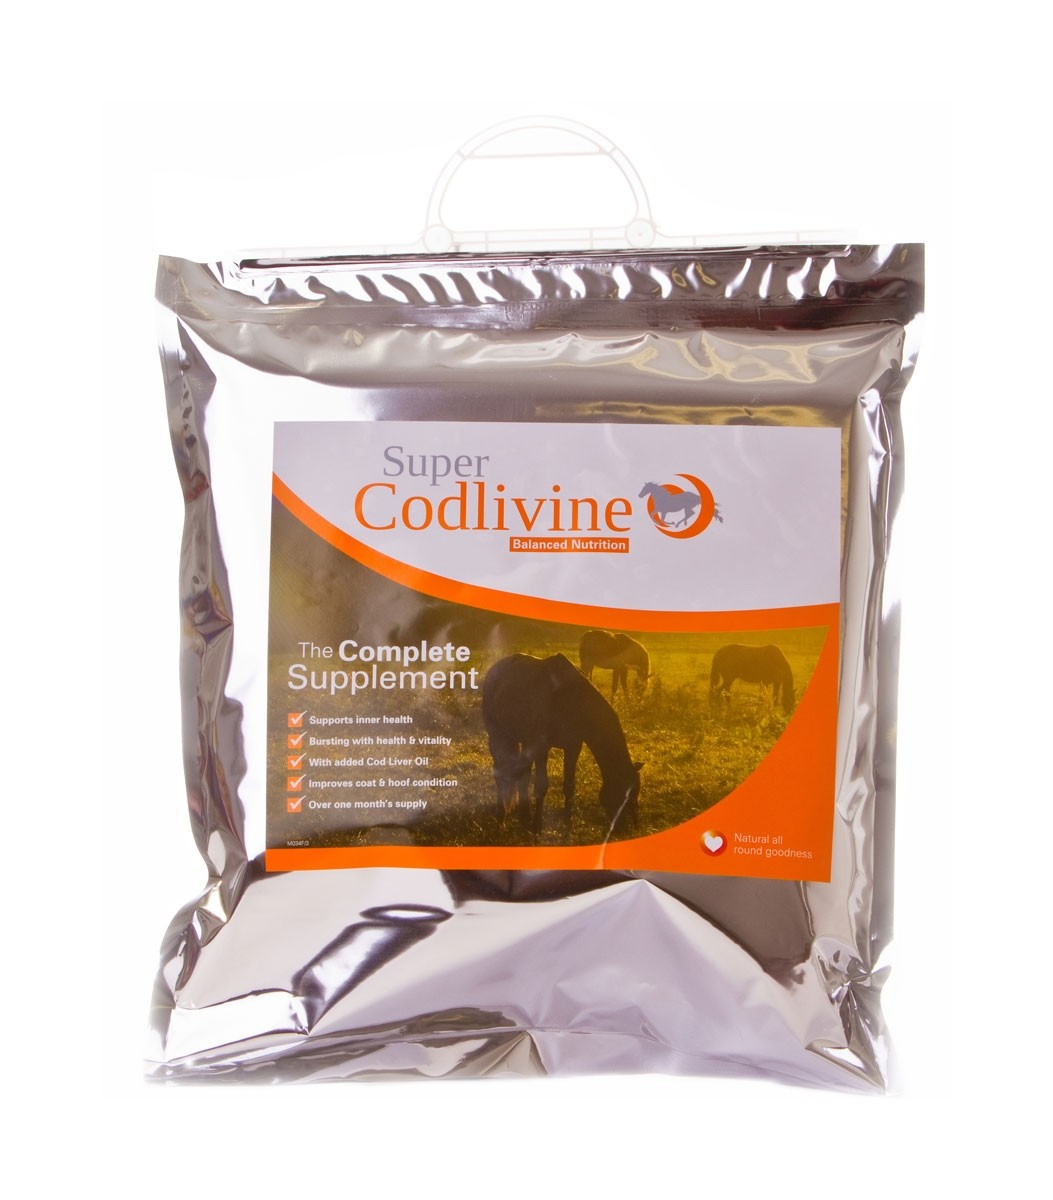 Super Codlivine The Complete Supplement Bucket  - Thomas Irving's equestrian and accessories store  Super Codlivine The Complete Supplement Carry Pack